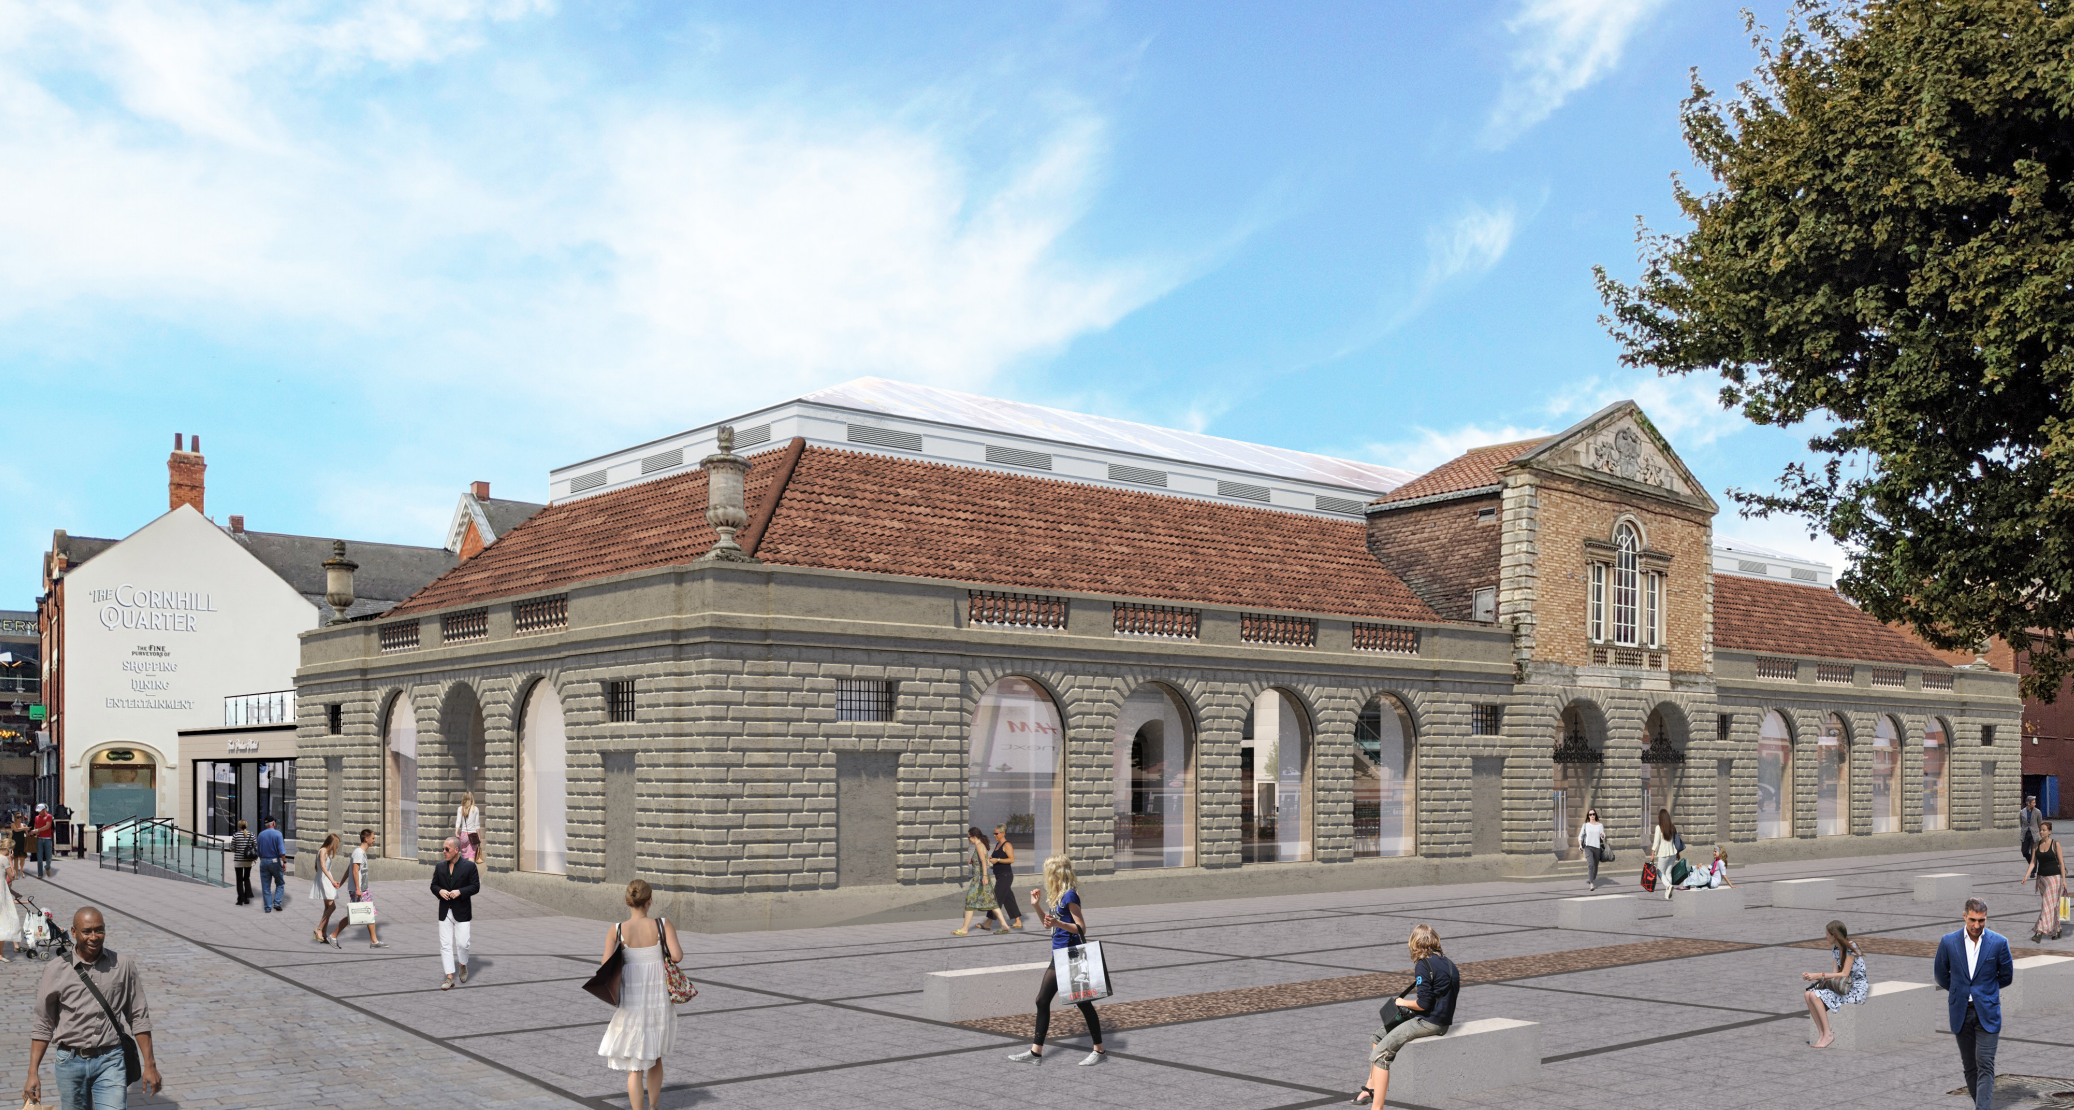 A CGI of what Lincoln Central Market could look like with windows replacing the stone arches.